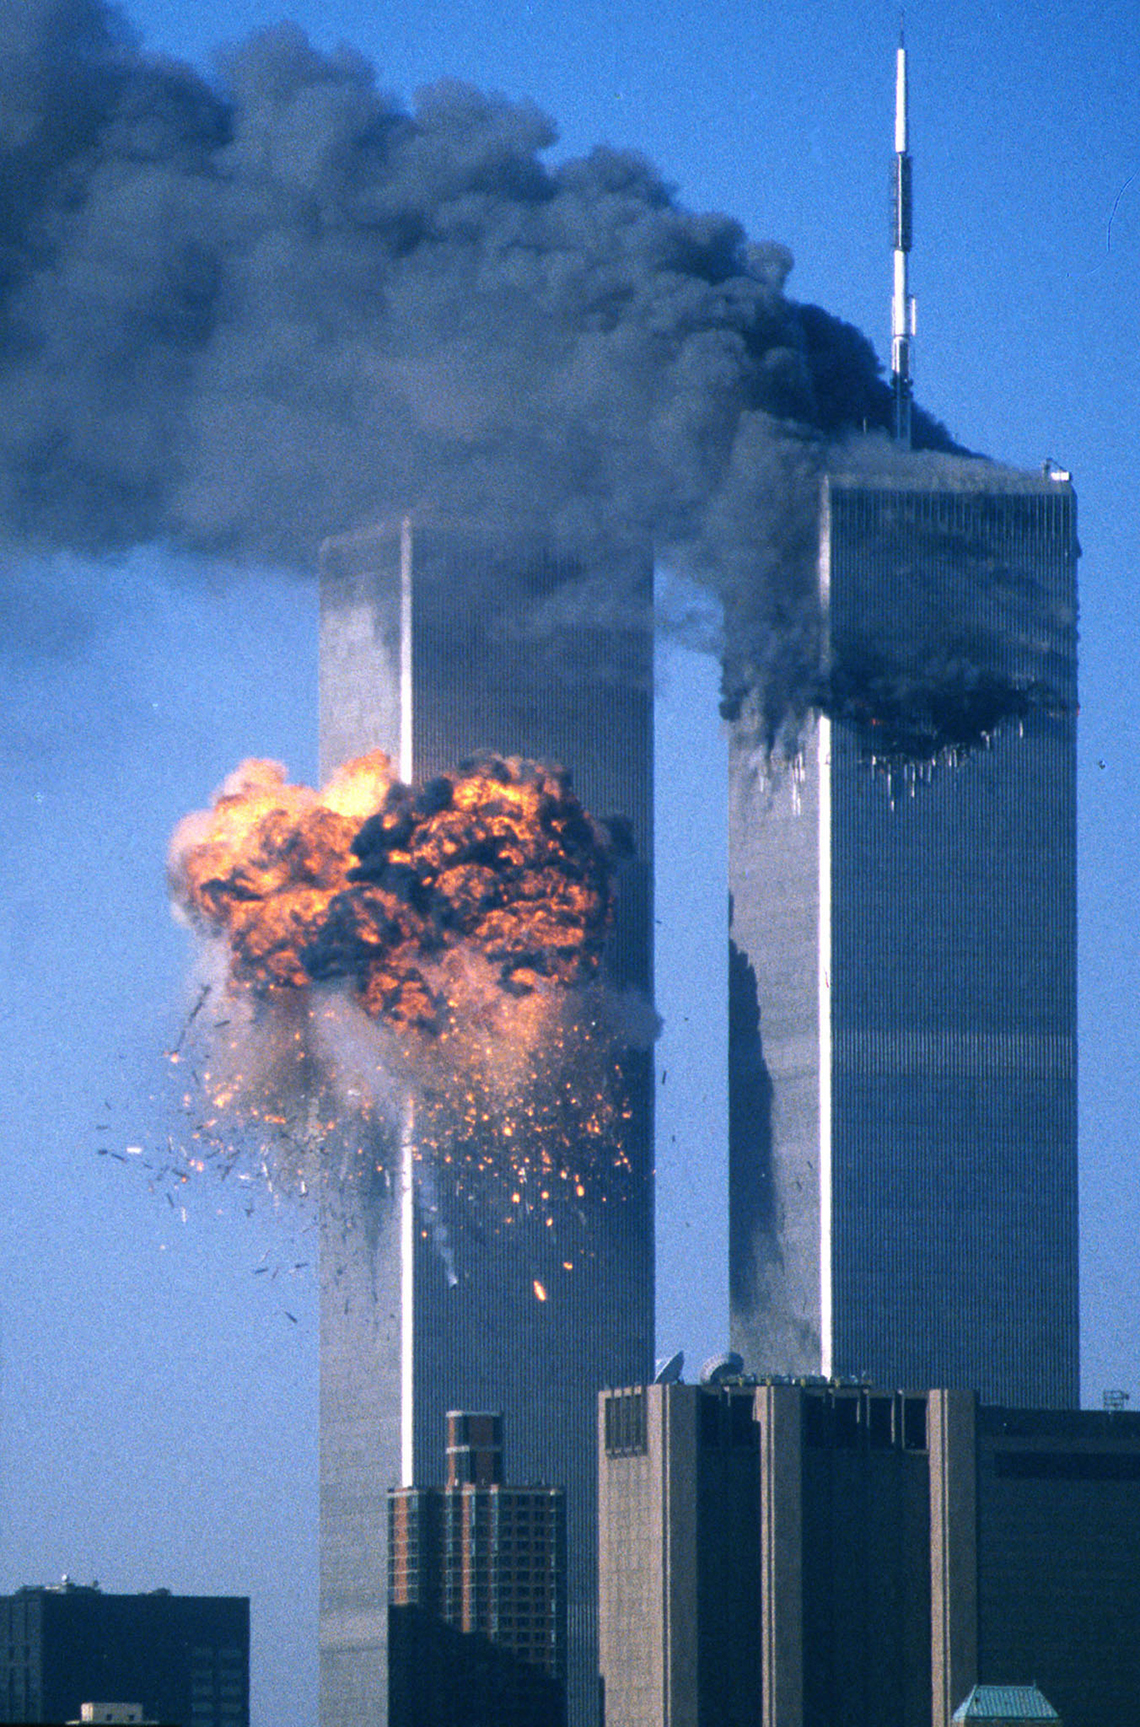 explosion on september eleventh two thousand and one as the second plane struck the world trade center